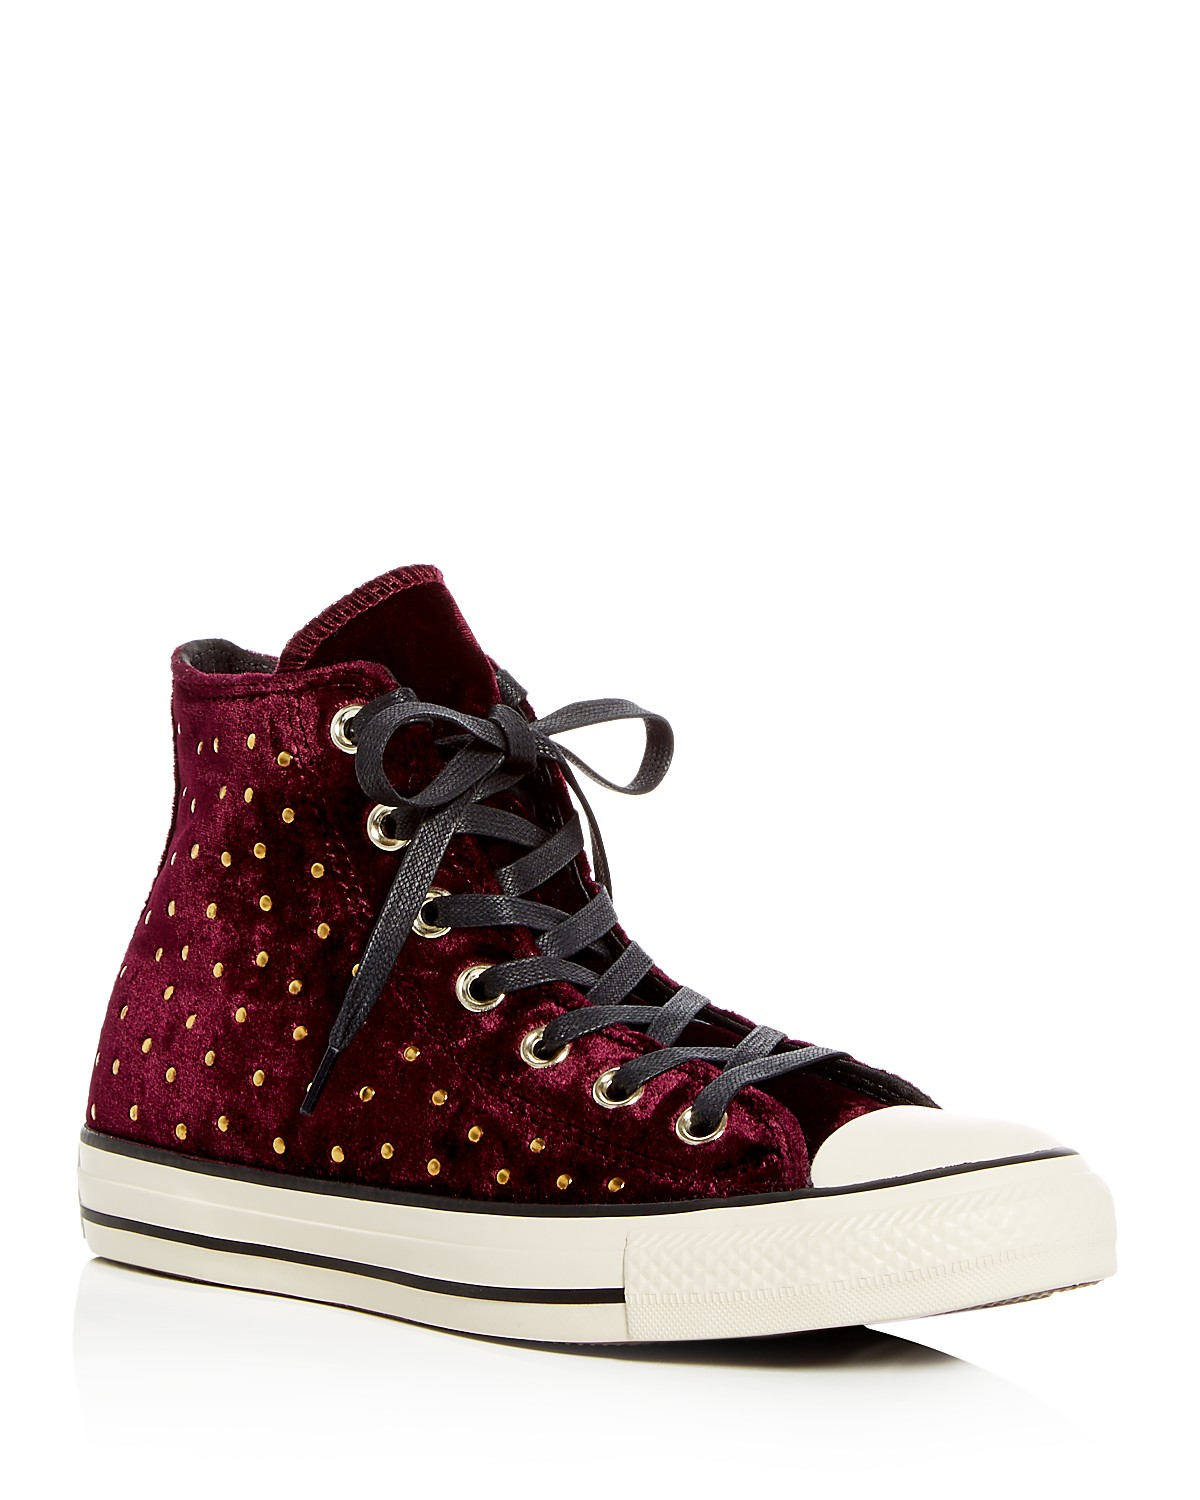 Converse Women's Chuck Taylor Embellished Velvet High Top Sneakers bXMSeUi